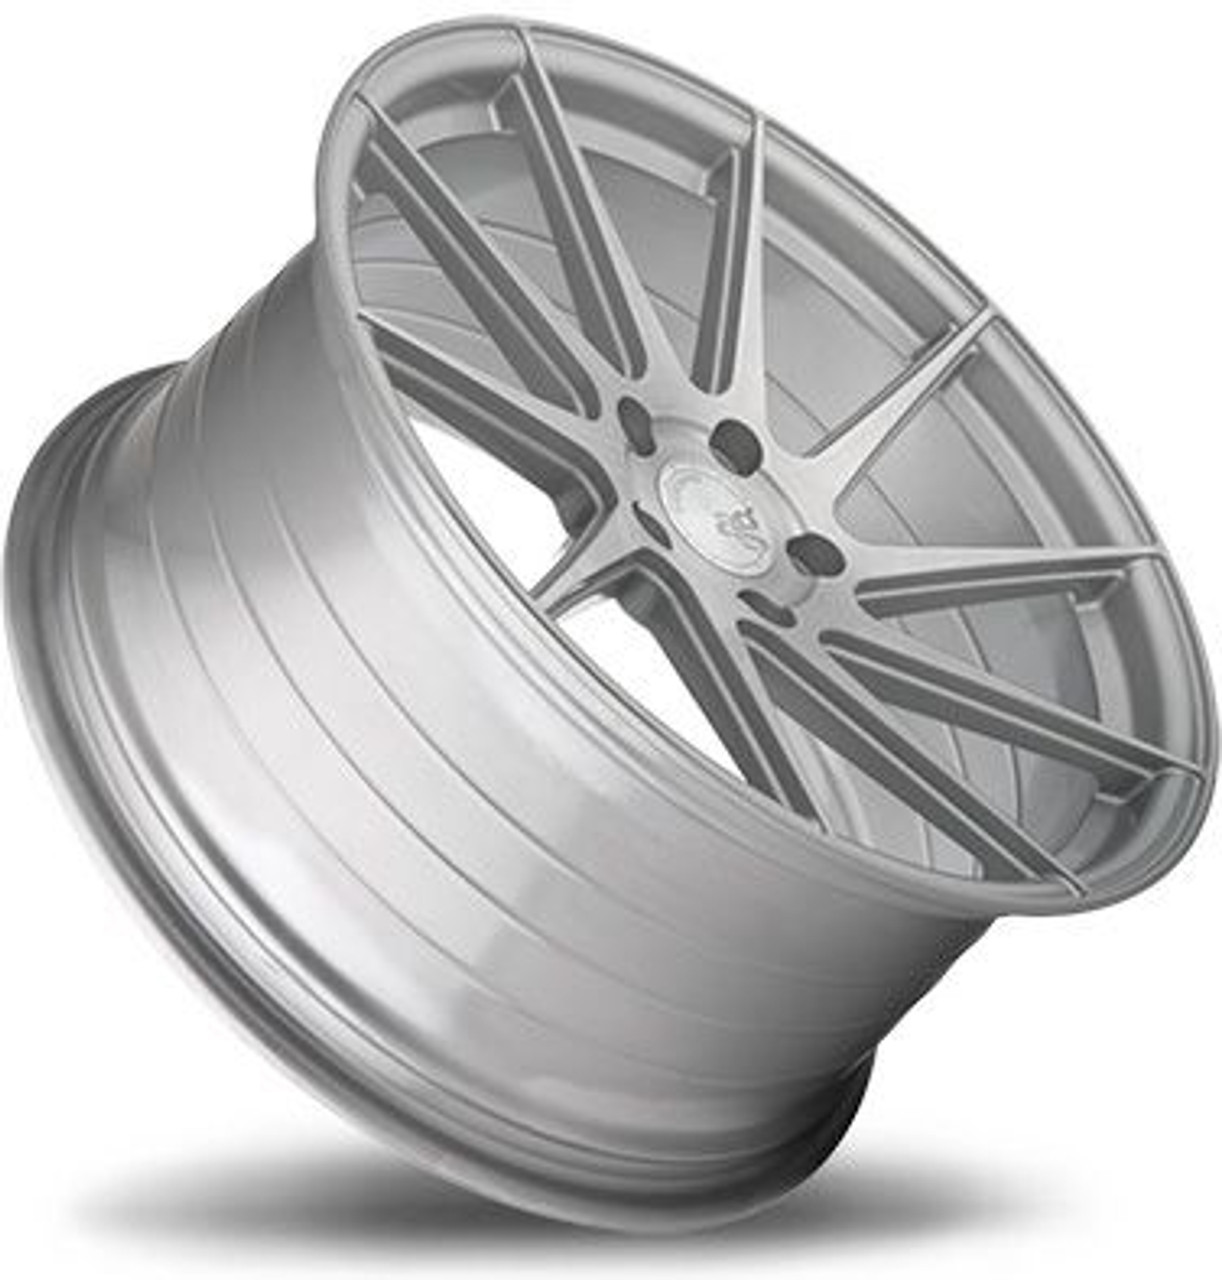 Liquid Silver Avant Garde M621 Wheels in Liquid Silver for Audi 19in/20in 5x112mm